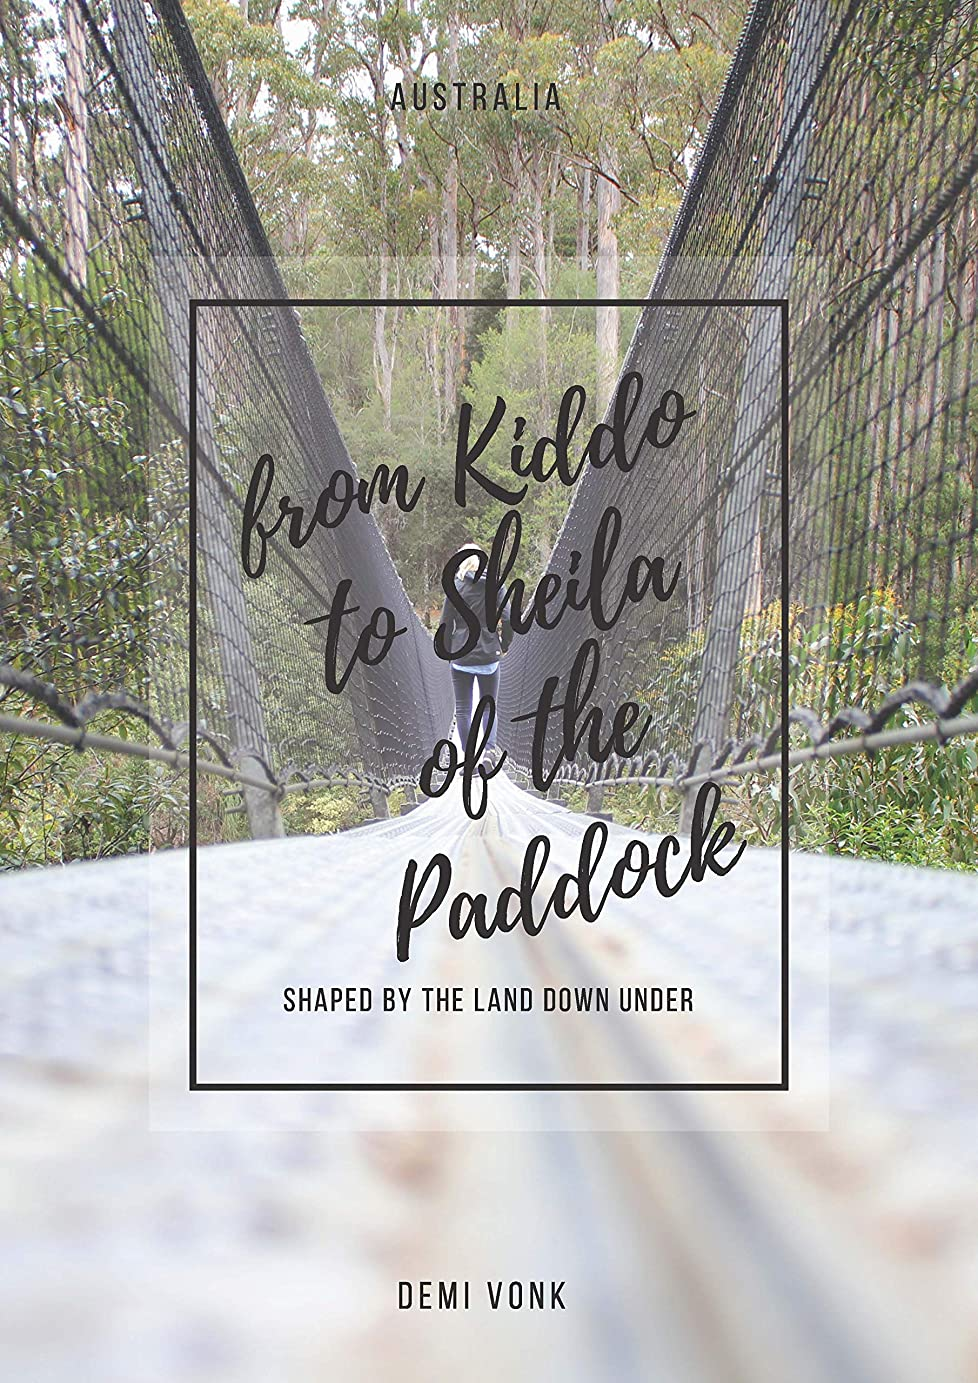 感謝層についてFrom Kiddo to Sheila of the Paddock: Shaped by the land Down Under (English Edition)